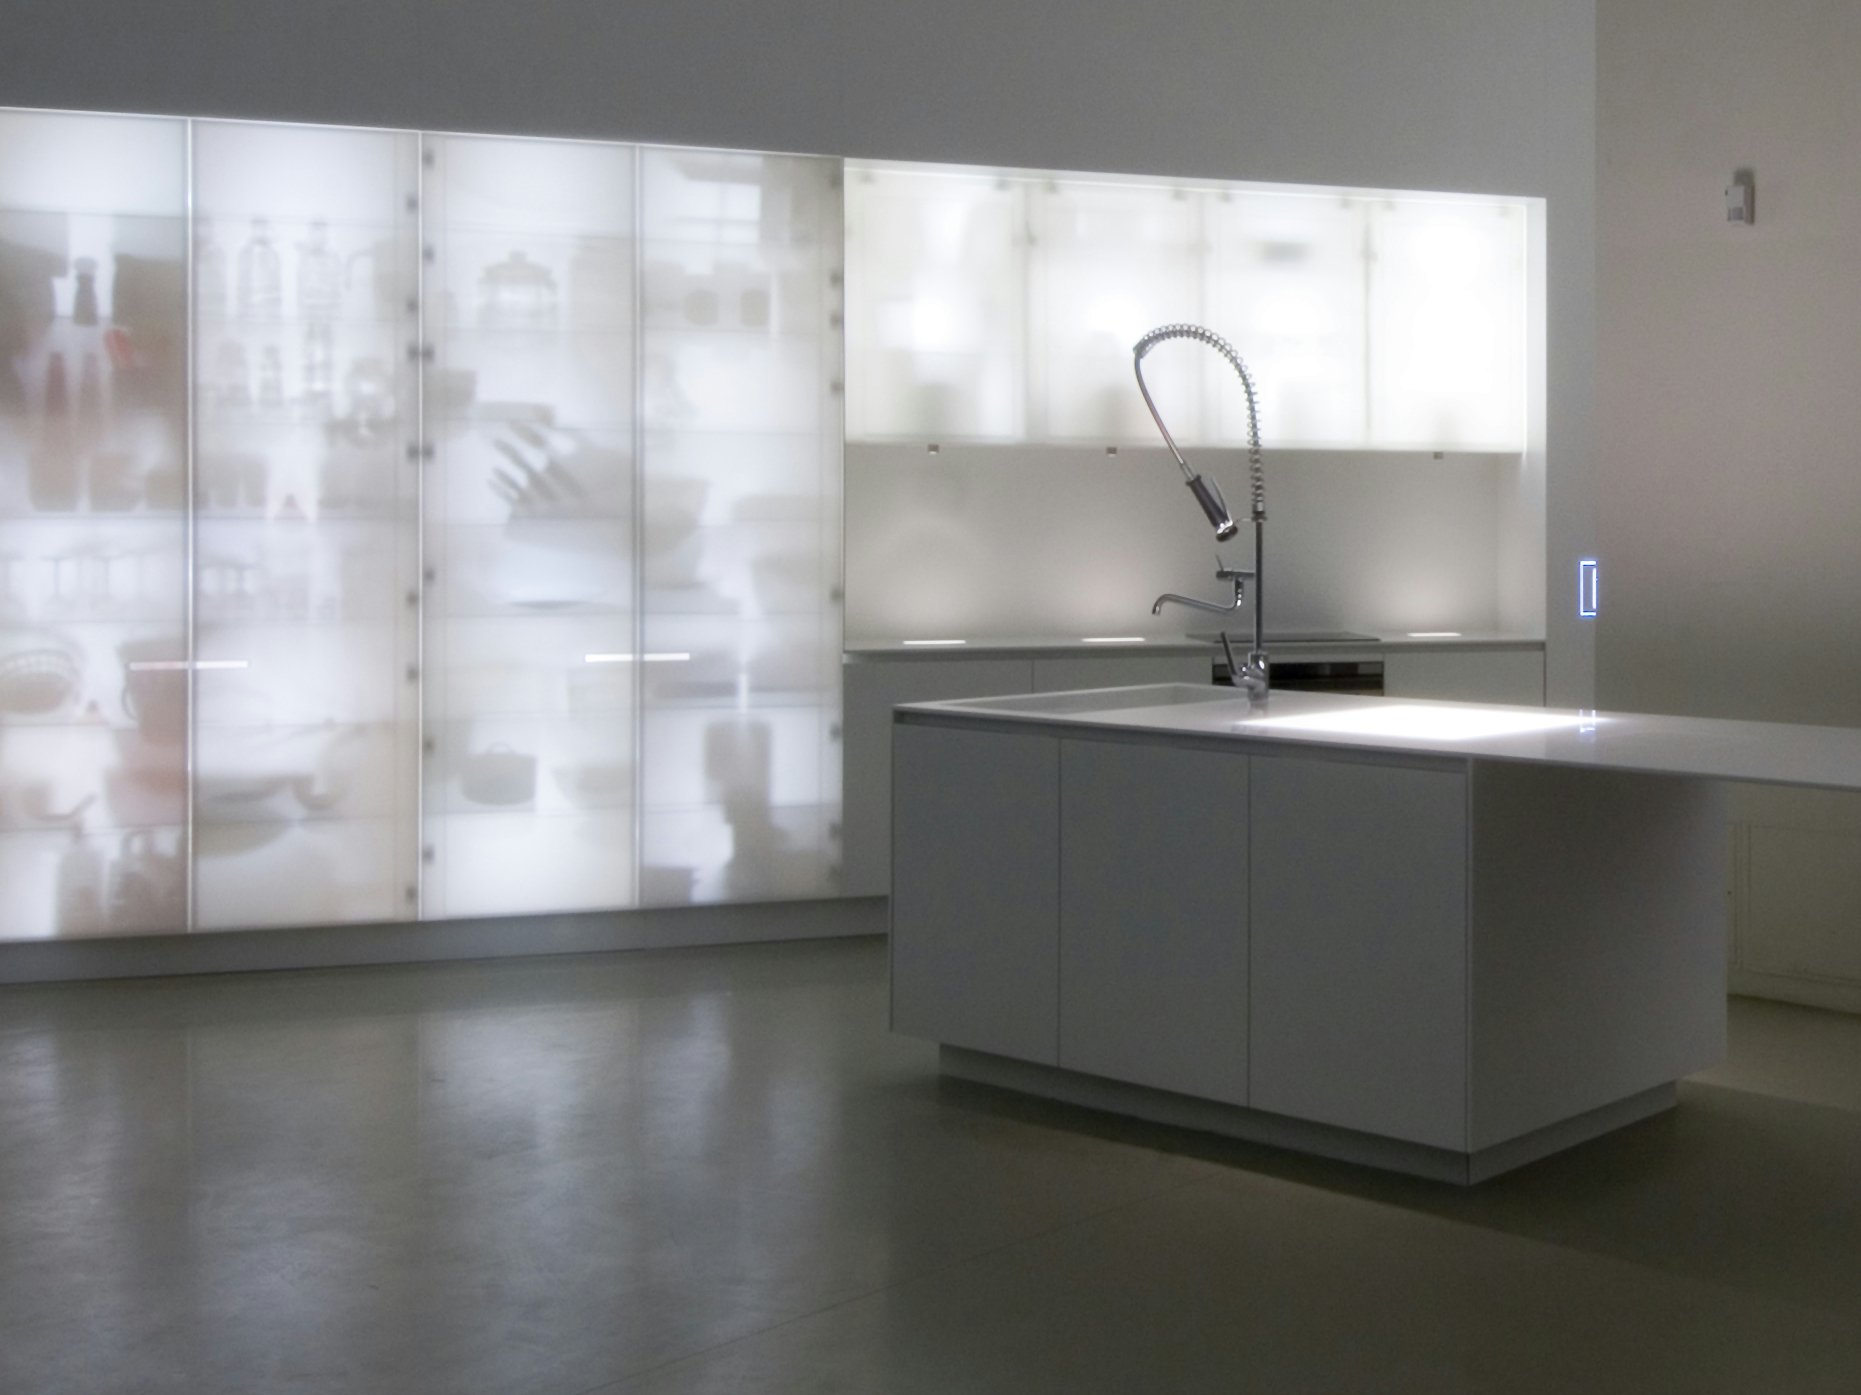 corian u00ae kitchen with island corian u00ae nouvel lumieres by in the wall storage cabinet in the wall spice cabinet